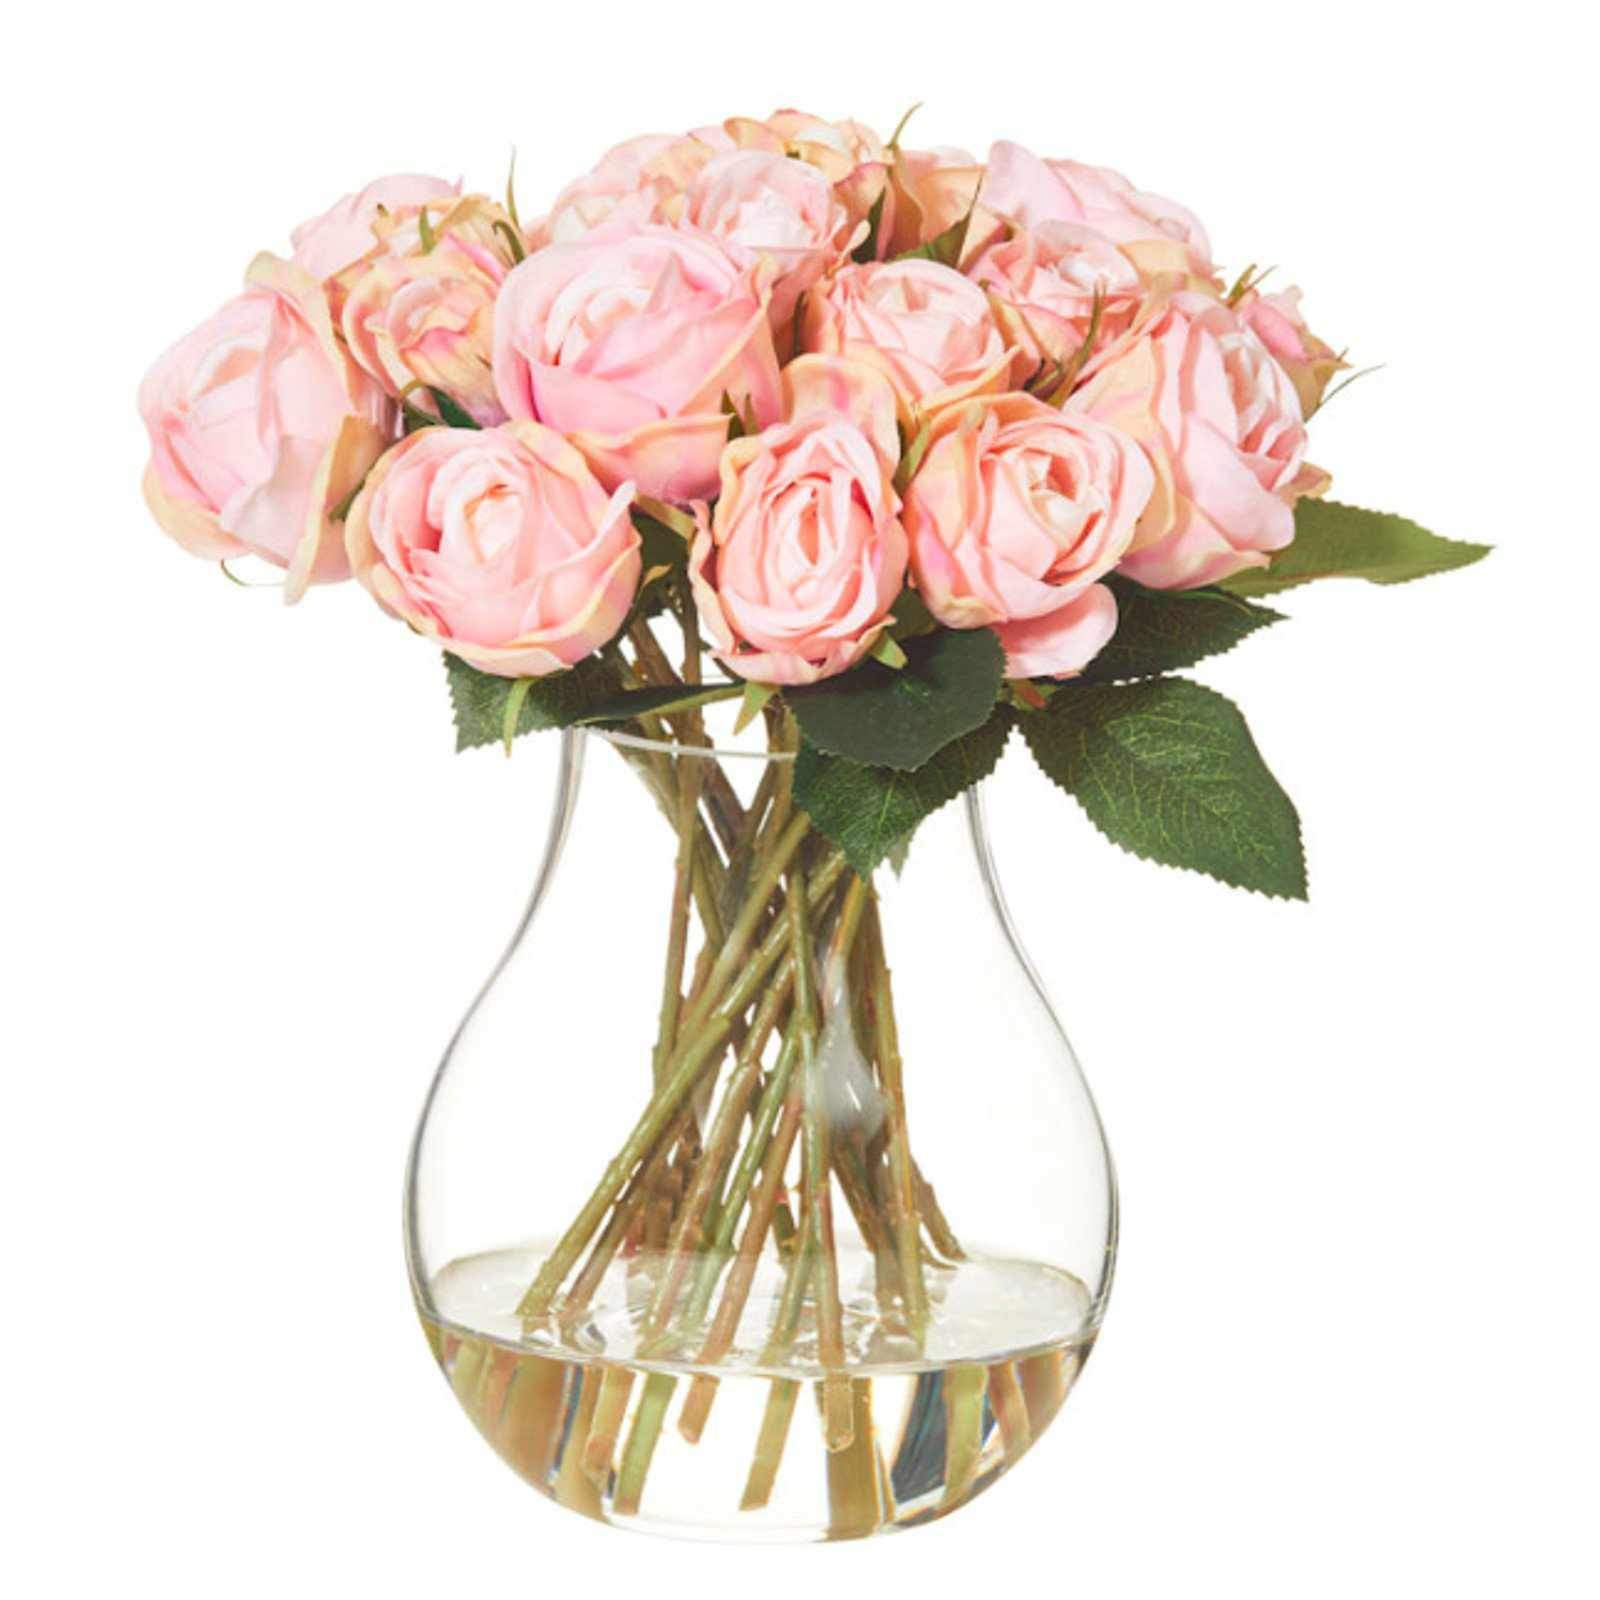 Mini Pink Rose Bouquet with Aria Vase - Artificial Flower Arrangement-artificial flowers and plants-Chef's Quality Cookware